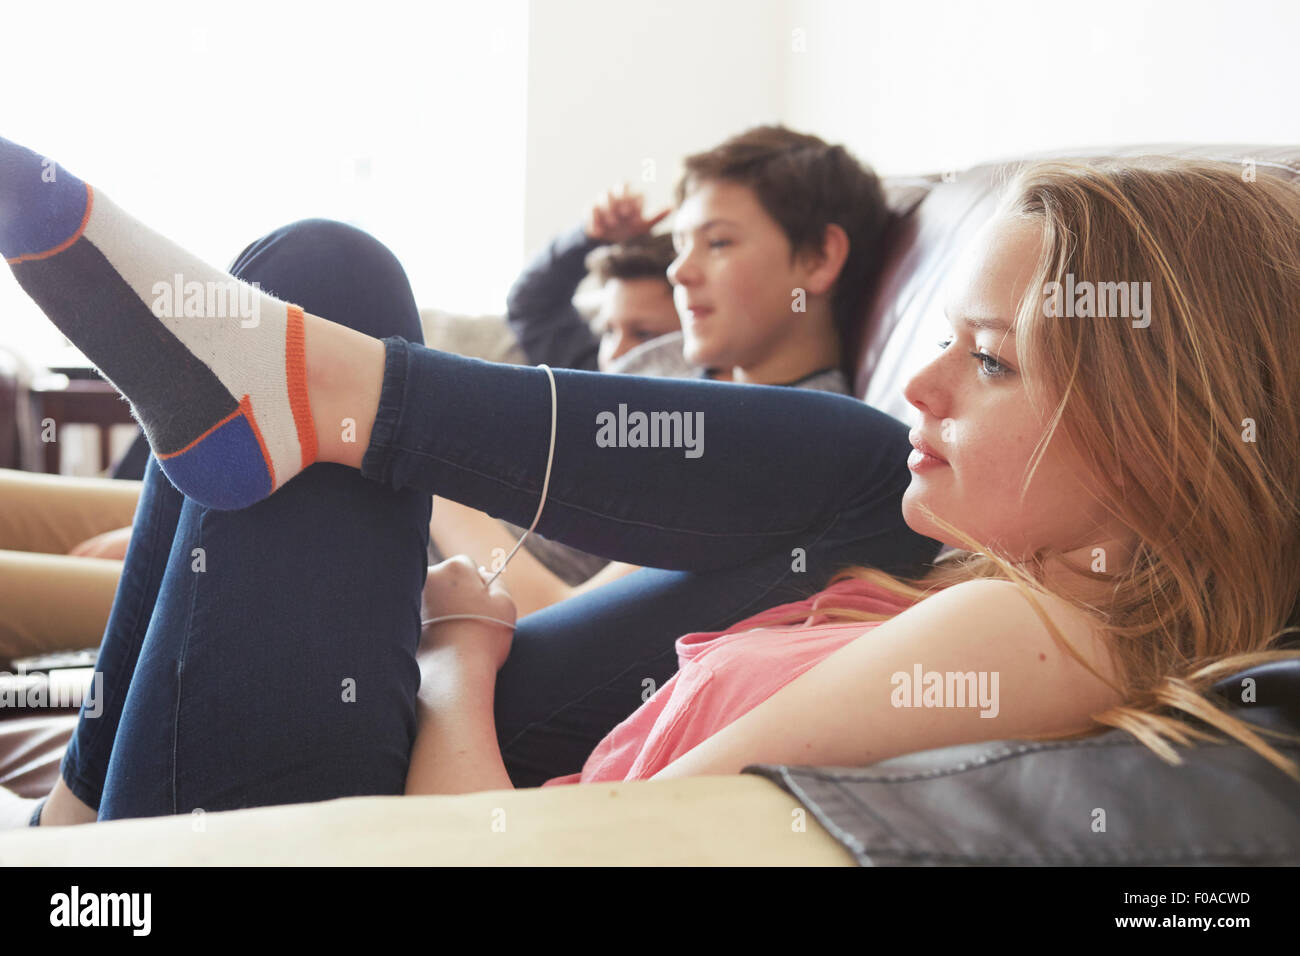 Girl and two boys watching tv from sofa - Stock Image